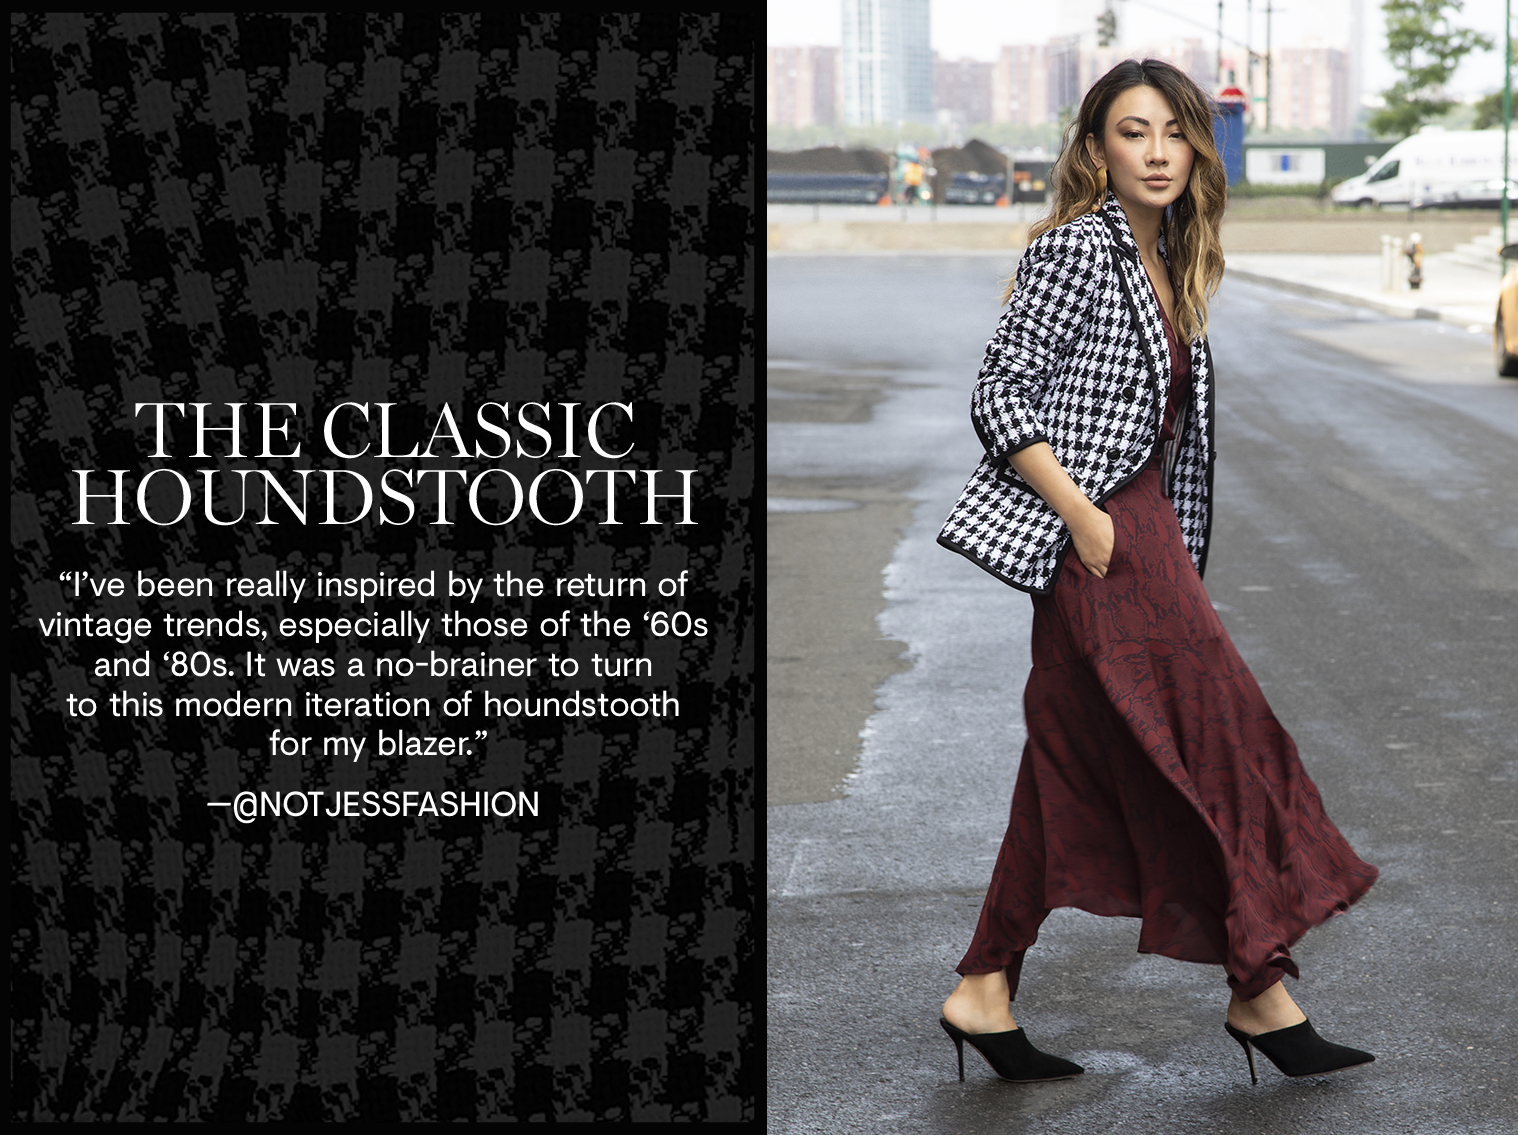 The Classic Houndstooth